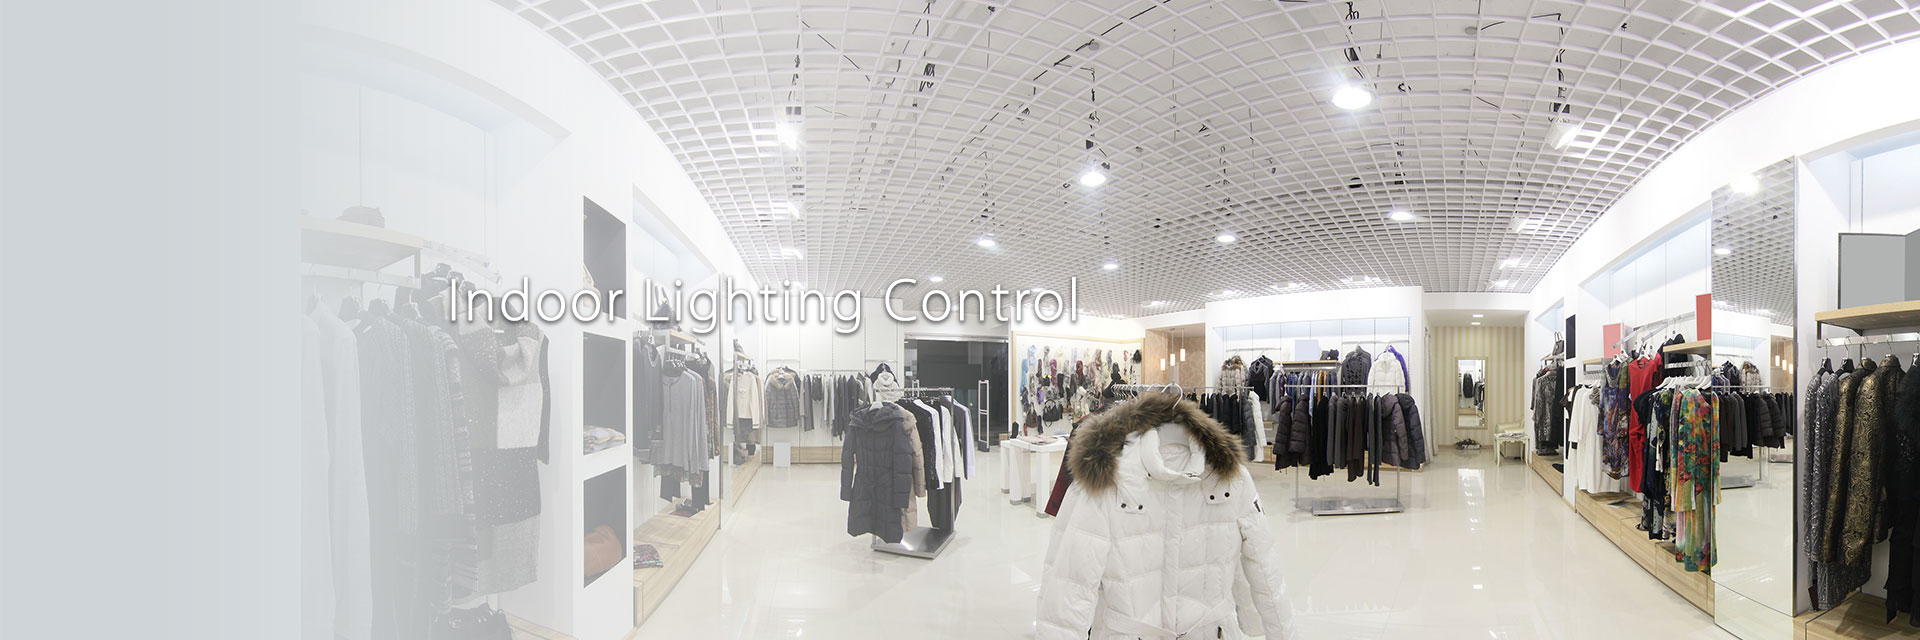 Indoor Lighting Control